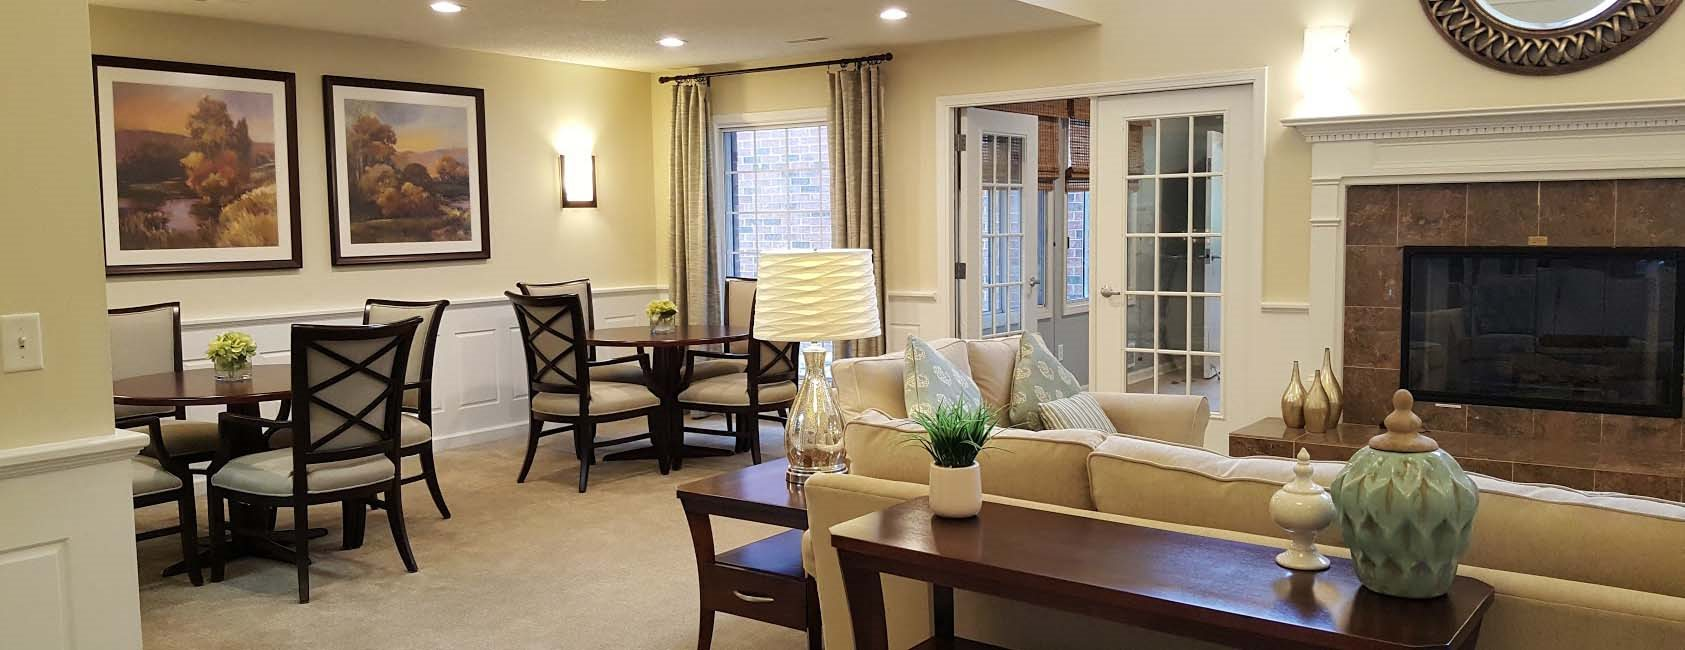 Wonderful Furnished Community at Brookfield Highlands Apartments 55+, 20825 George Hunt Circle, Waukesha, WI 53186